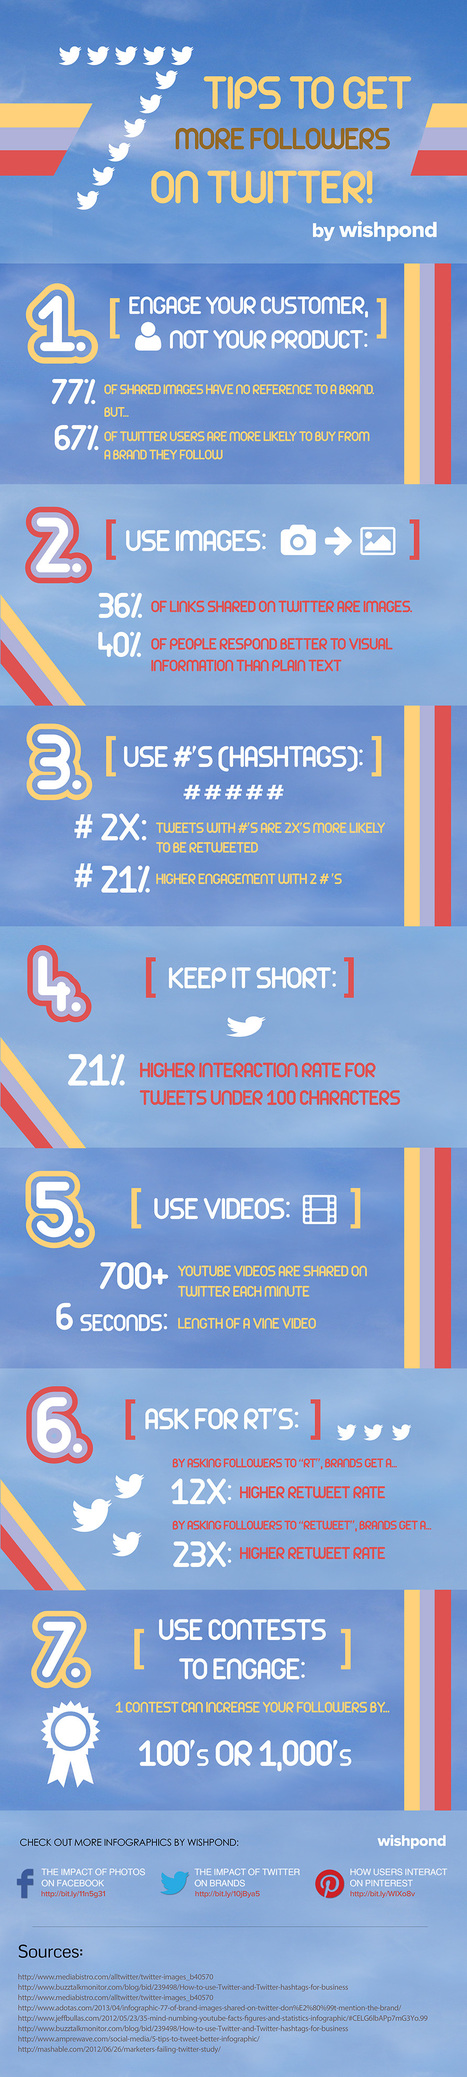 Infographic: 36% of all shared links on Twitter are photos | Ada Knol Management & Coaching | Scoop.it